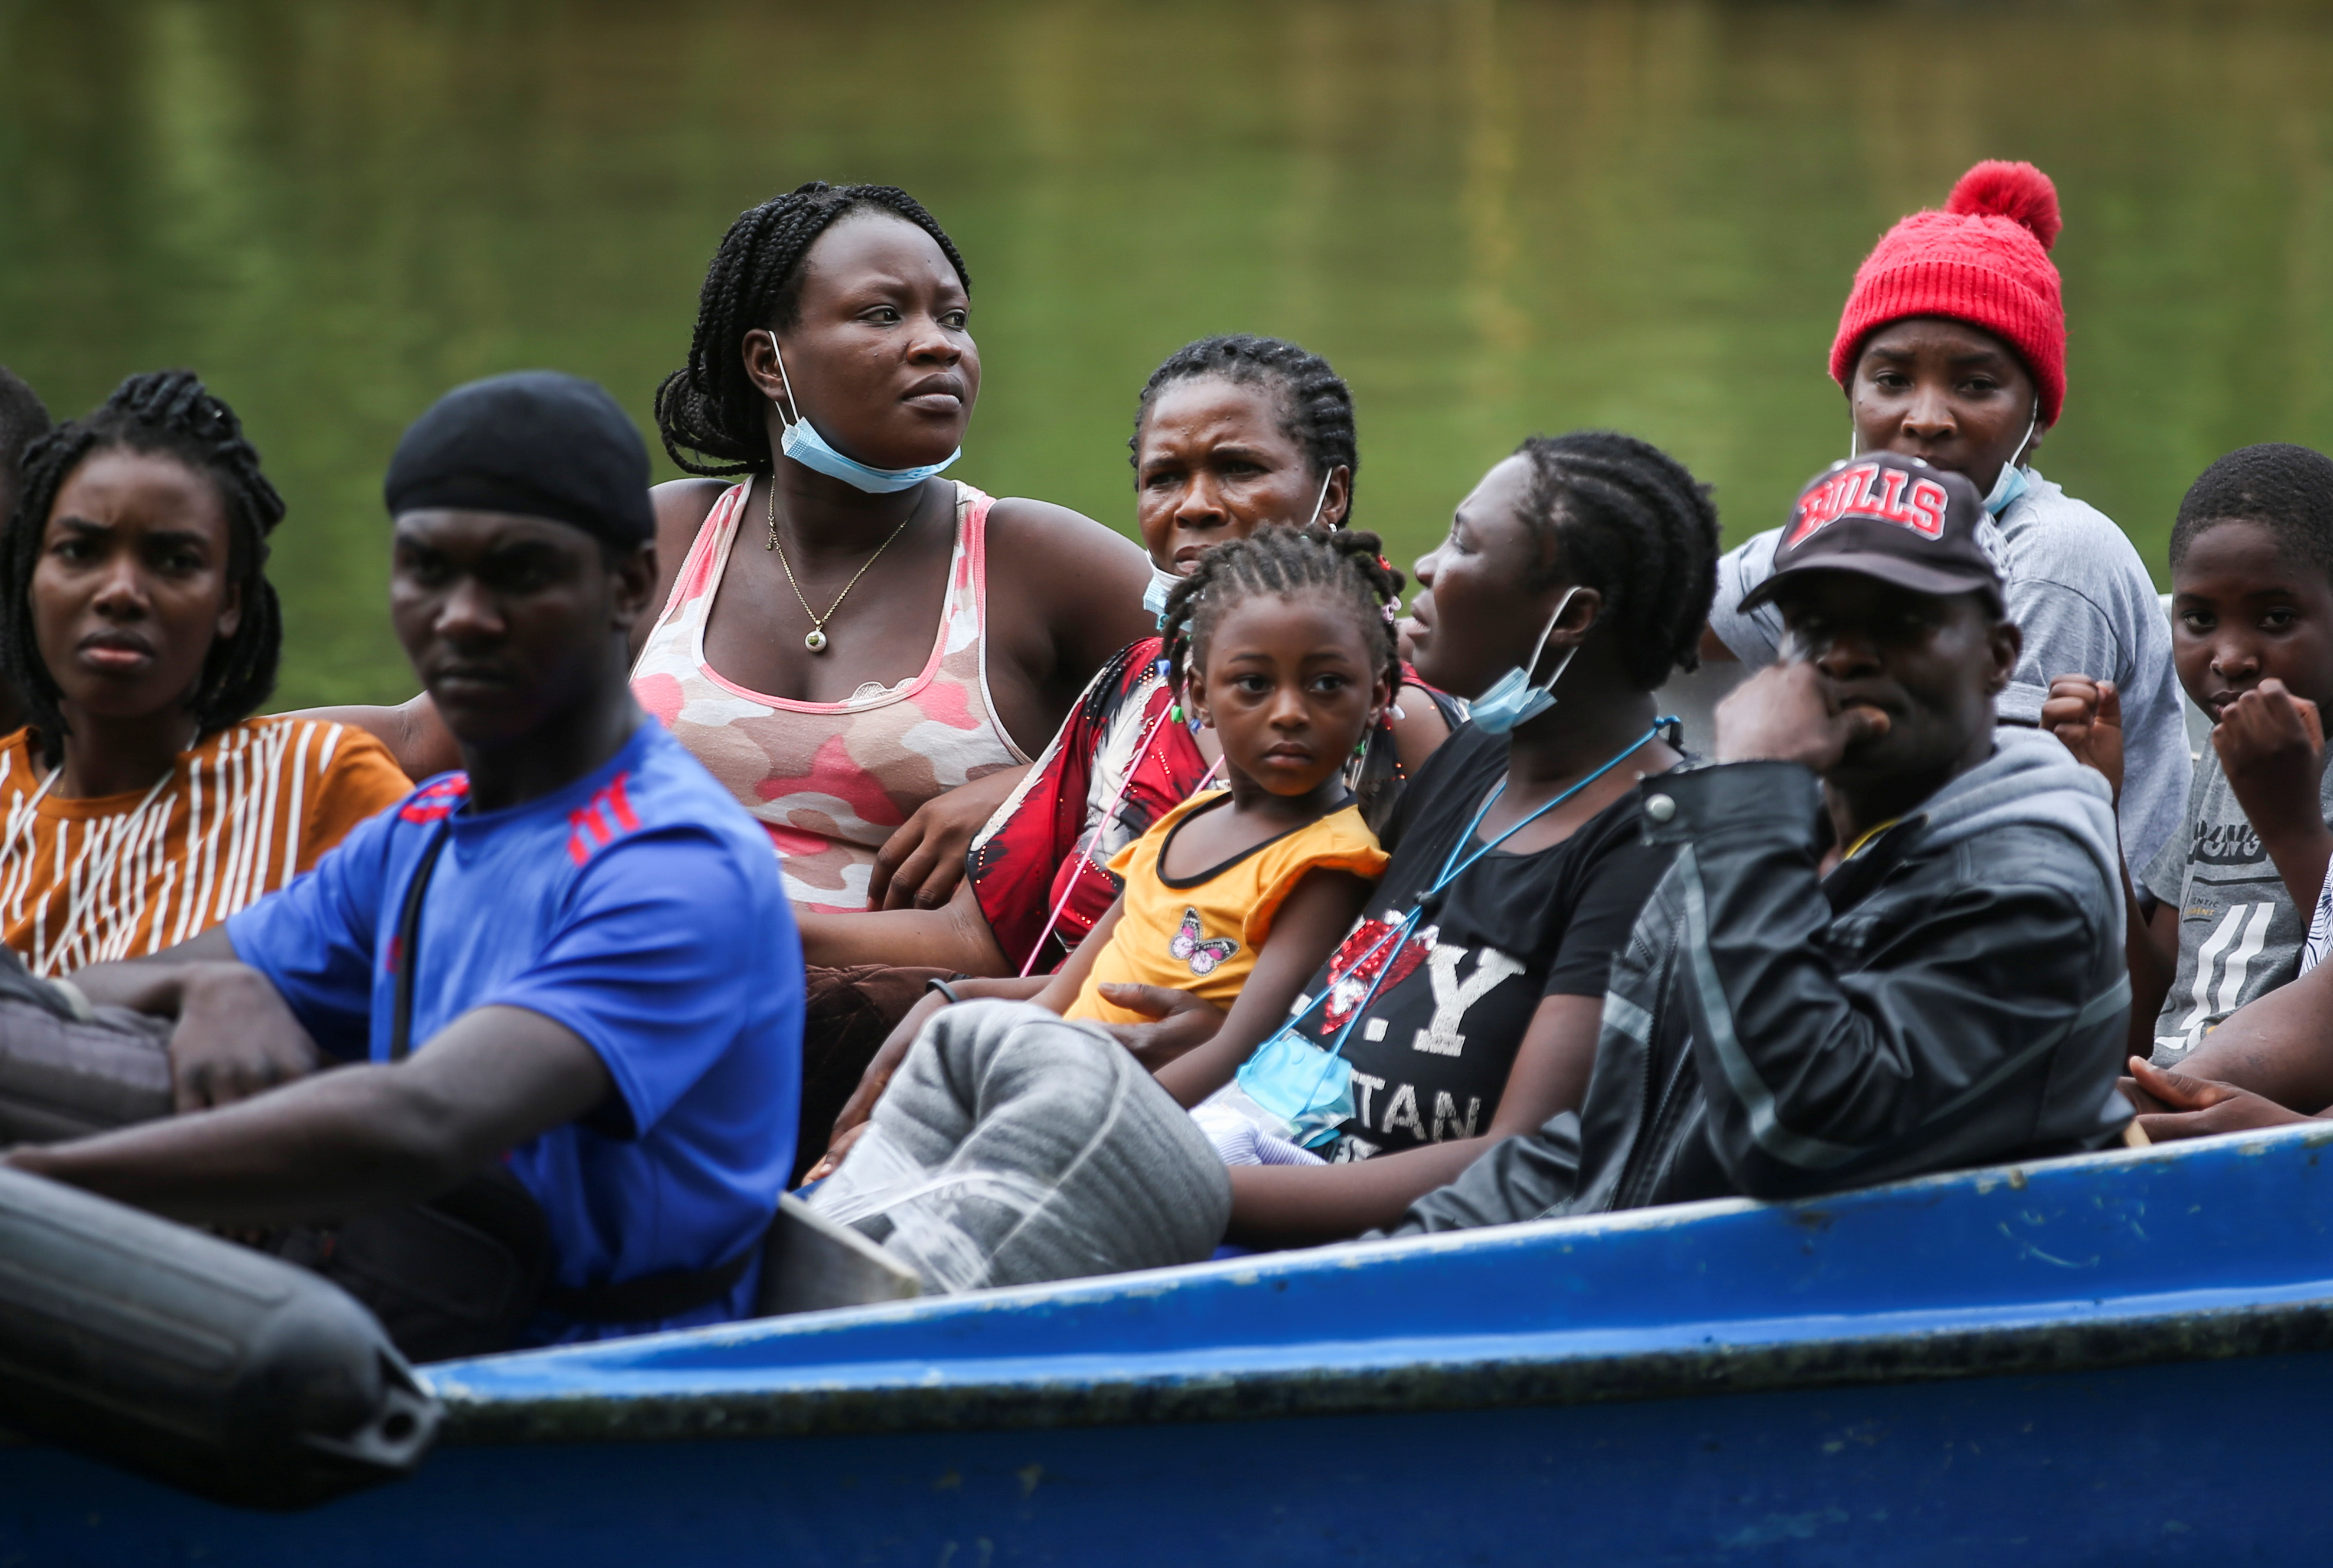 Migrants, mostly Haitians, arrive by boat in Acandi to cross into Panama and continue north, in Acandi, Colombia September 23, 2021. REUTERS/Luisa Gonzalez